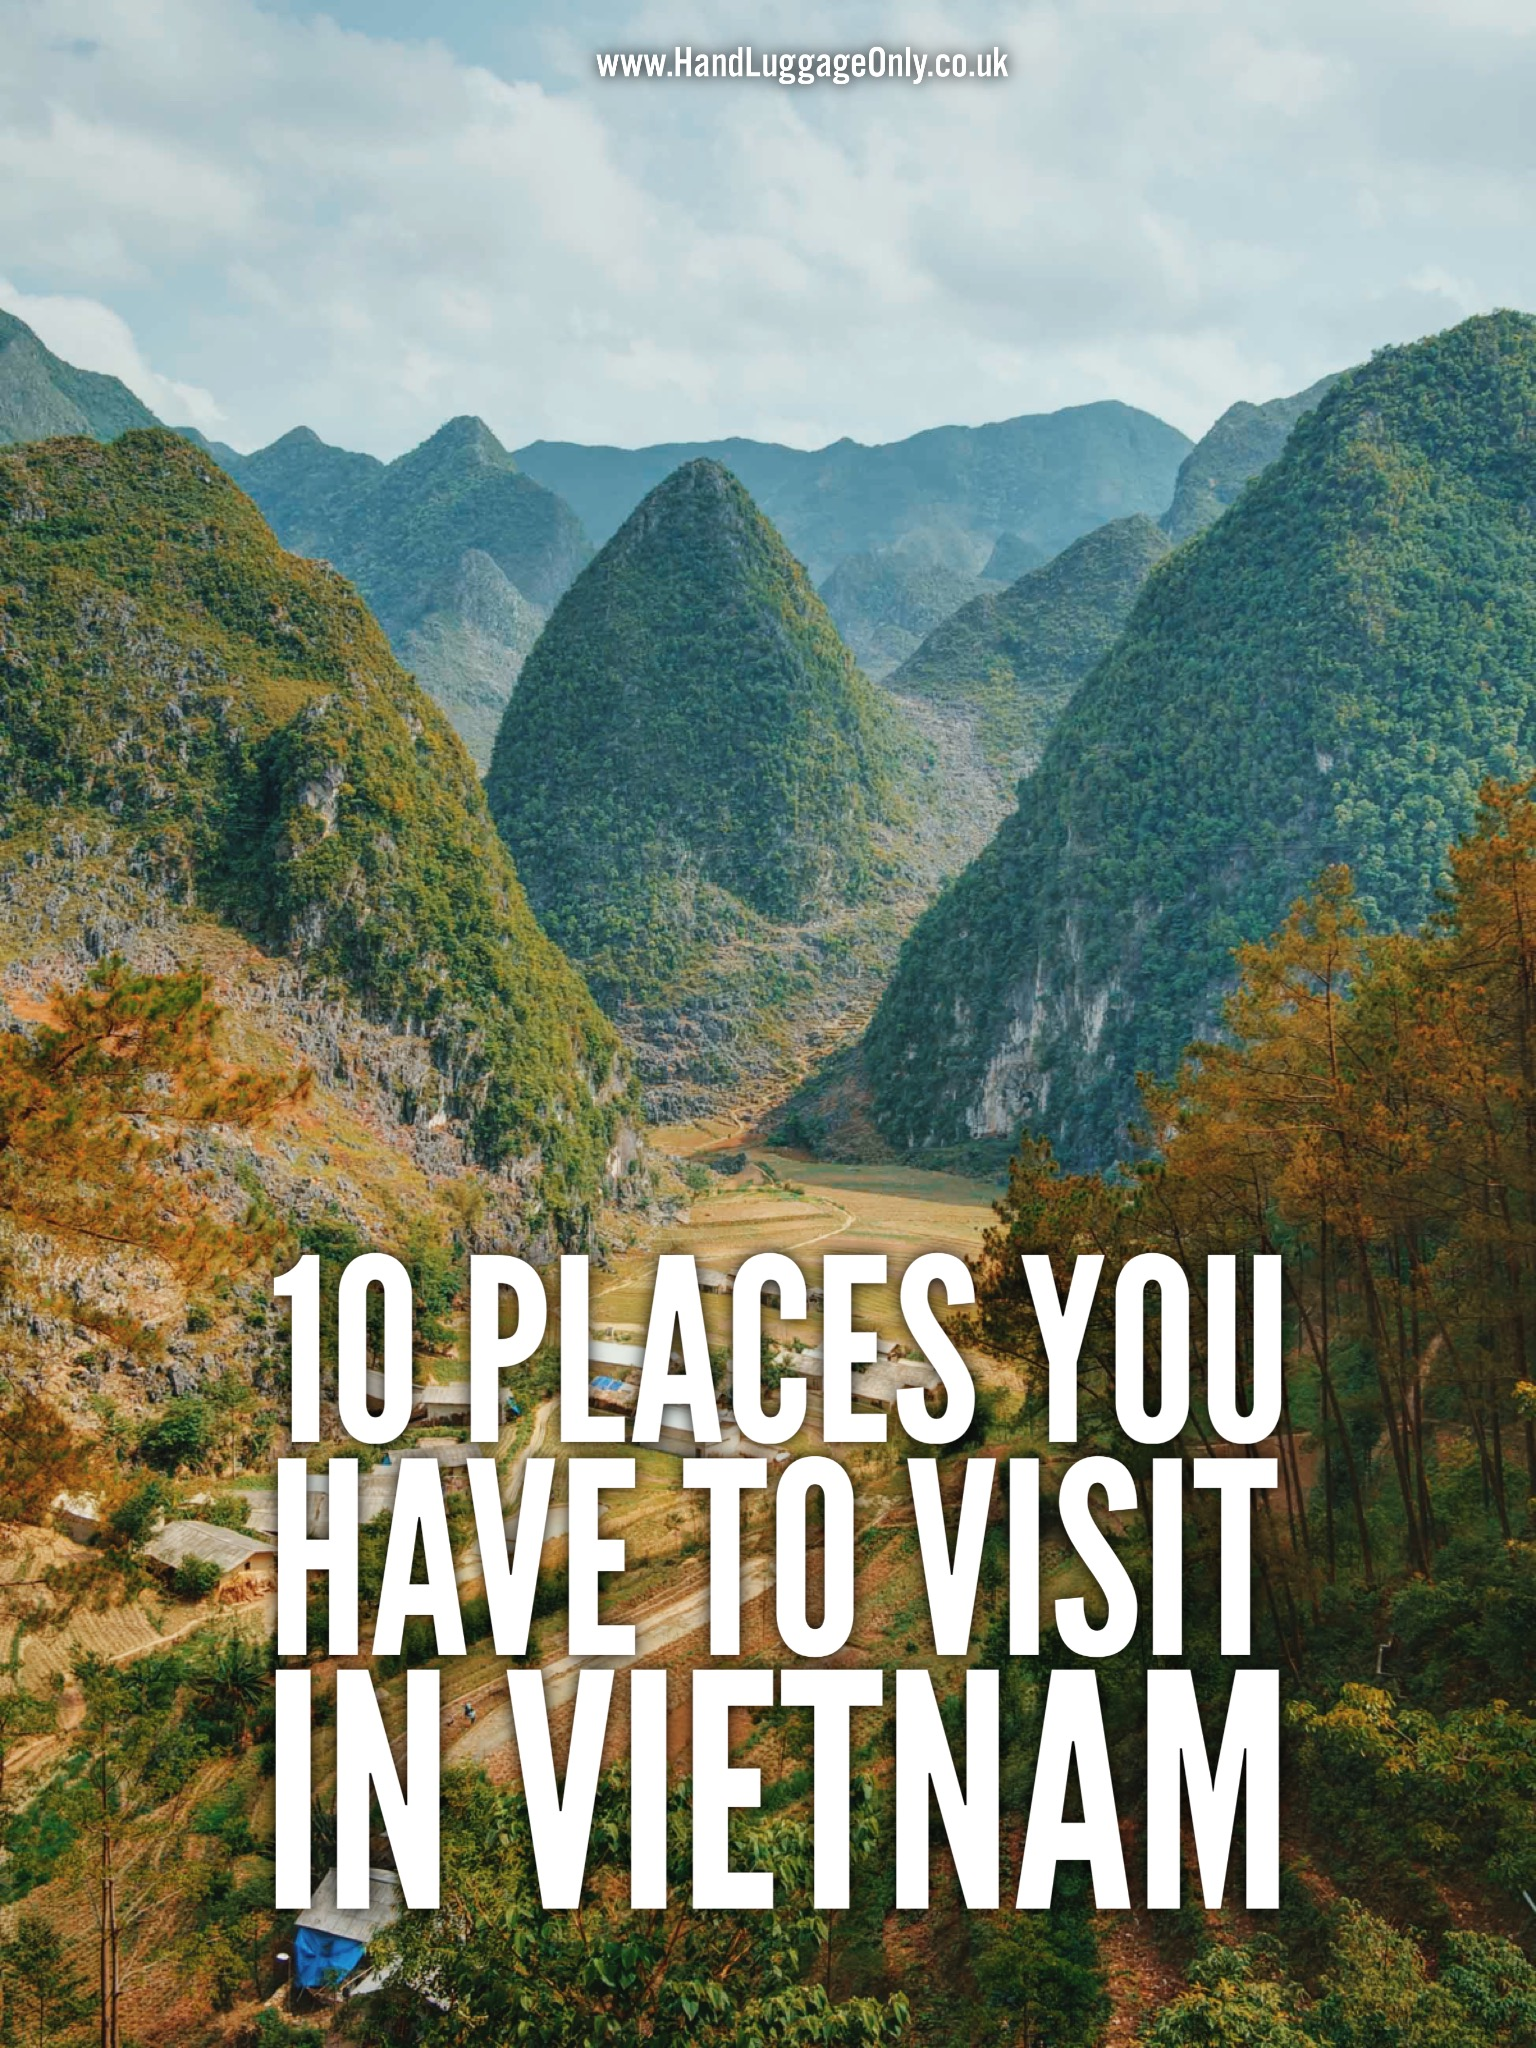 10 Places You Have to Visit in Vietnam (1)